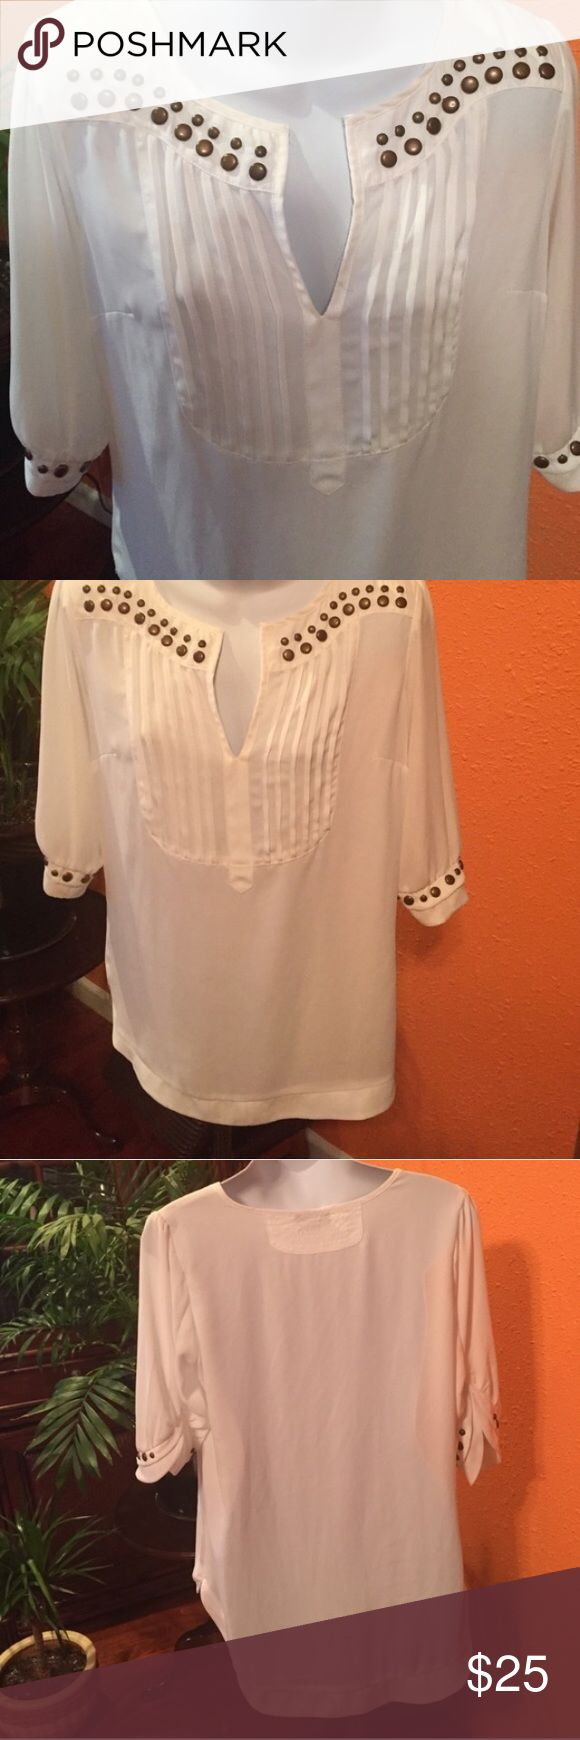 Studded Pleated Top by Bardot Gorgeous cream colored top with edgy studs and great detail.  Excellent condition! Bardot Tops Blouses